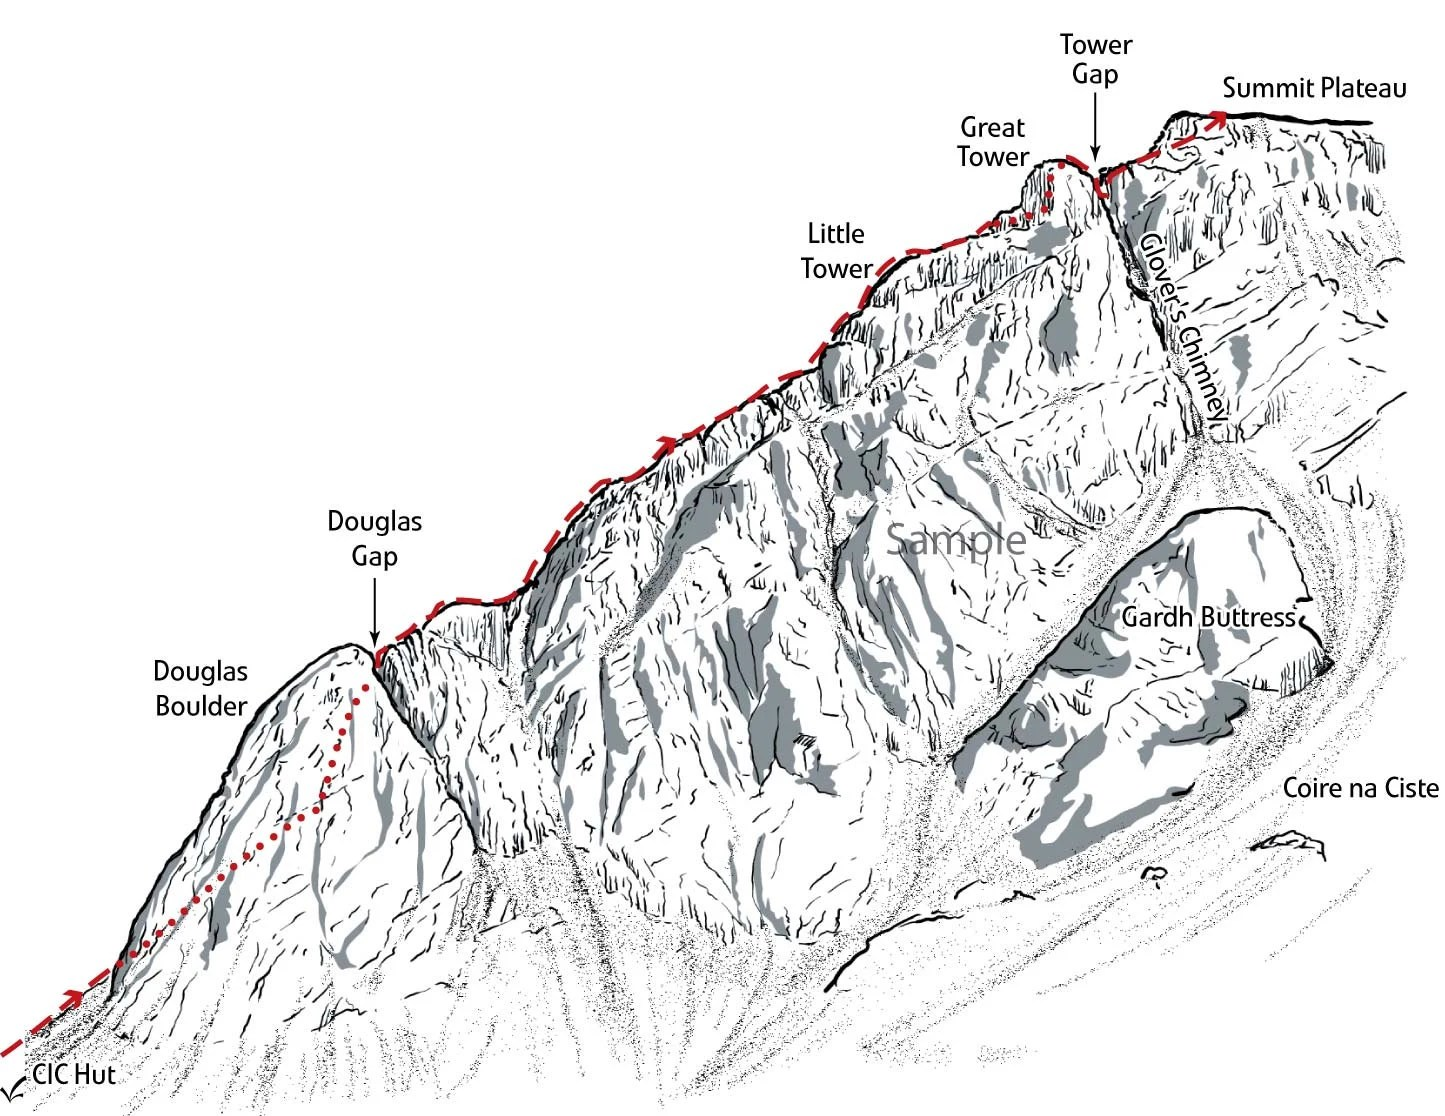 Line Illustration Showing The Route Up Tower Ridge On The